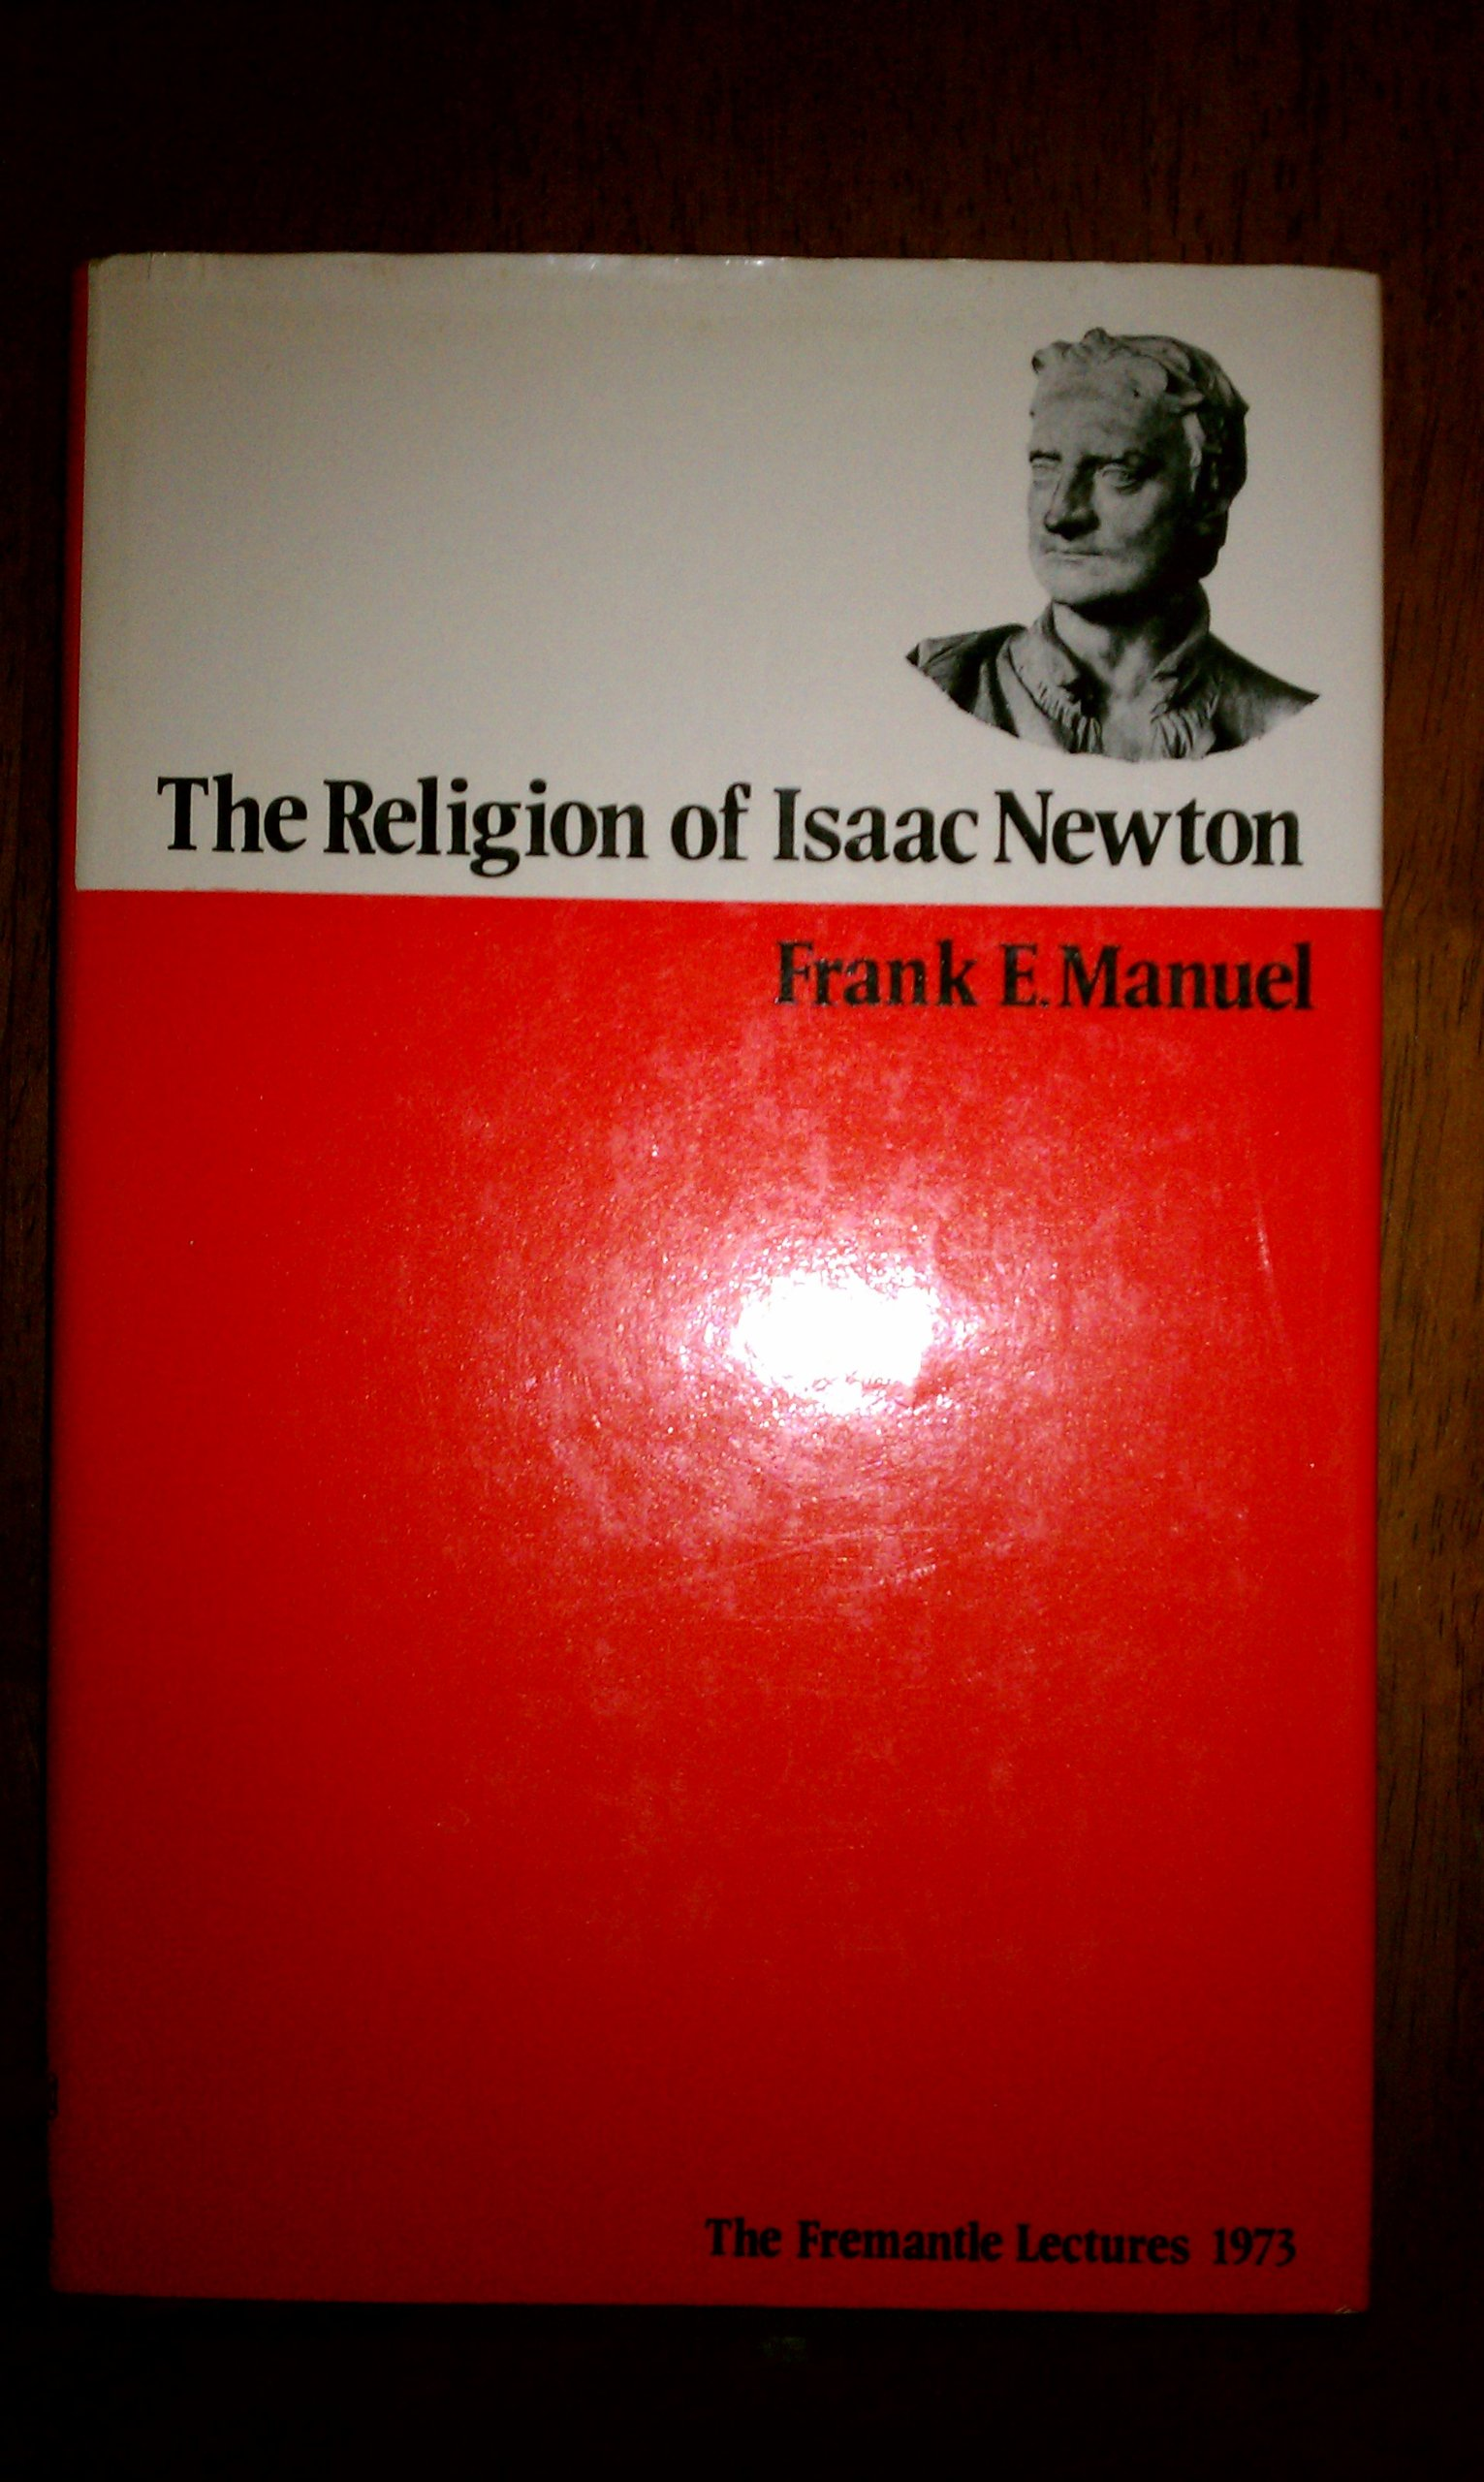 Religion of Isaac Newton: Freemantle Lectures, 1973 (Fremantle lectures)